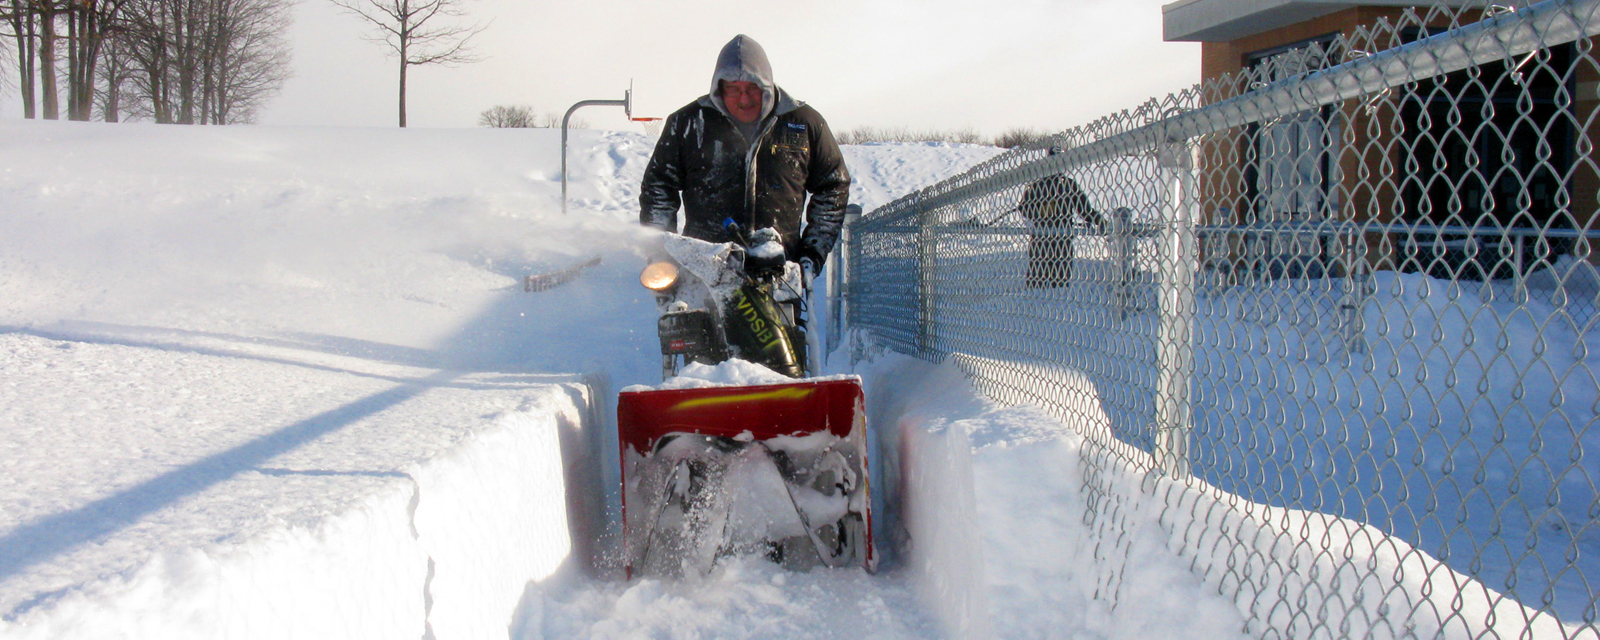 custodian using snowblower on snowday